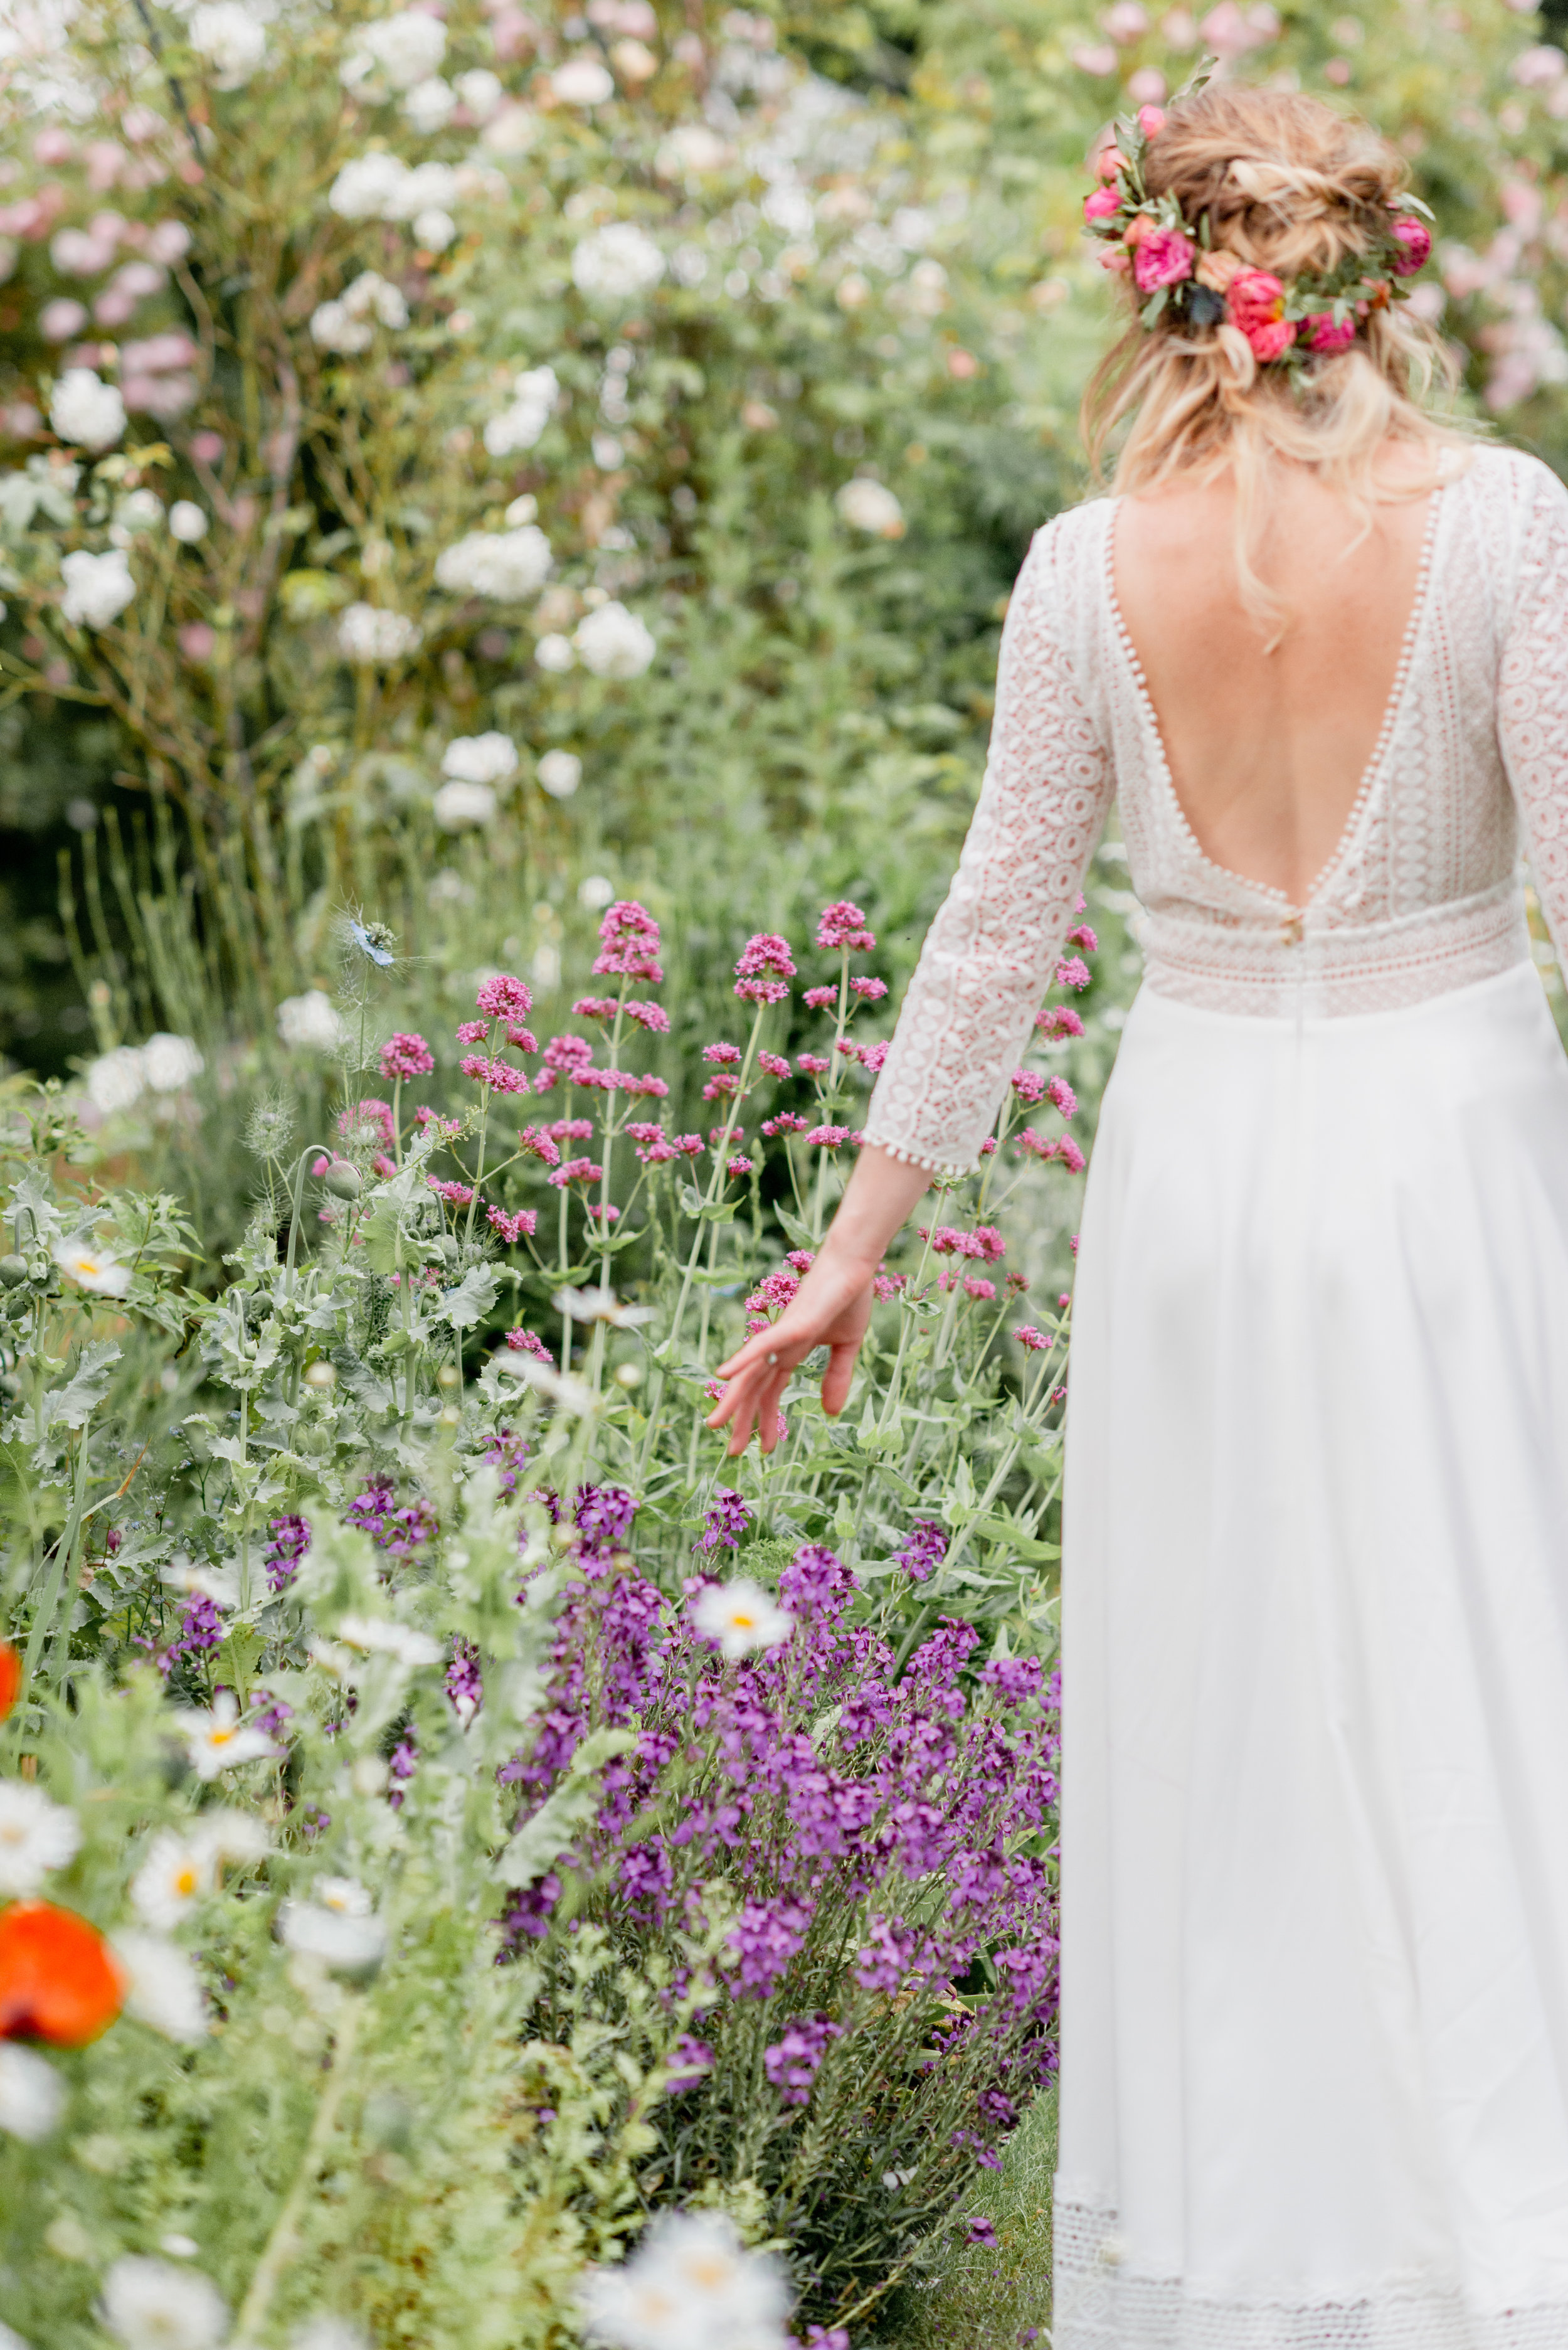 S+A_William Cecil Wedding_Boho Wedding_Fine Art Wedding_Rebekah Robert Photography-847.jpg